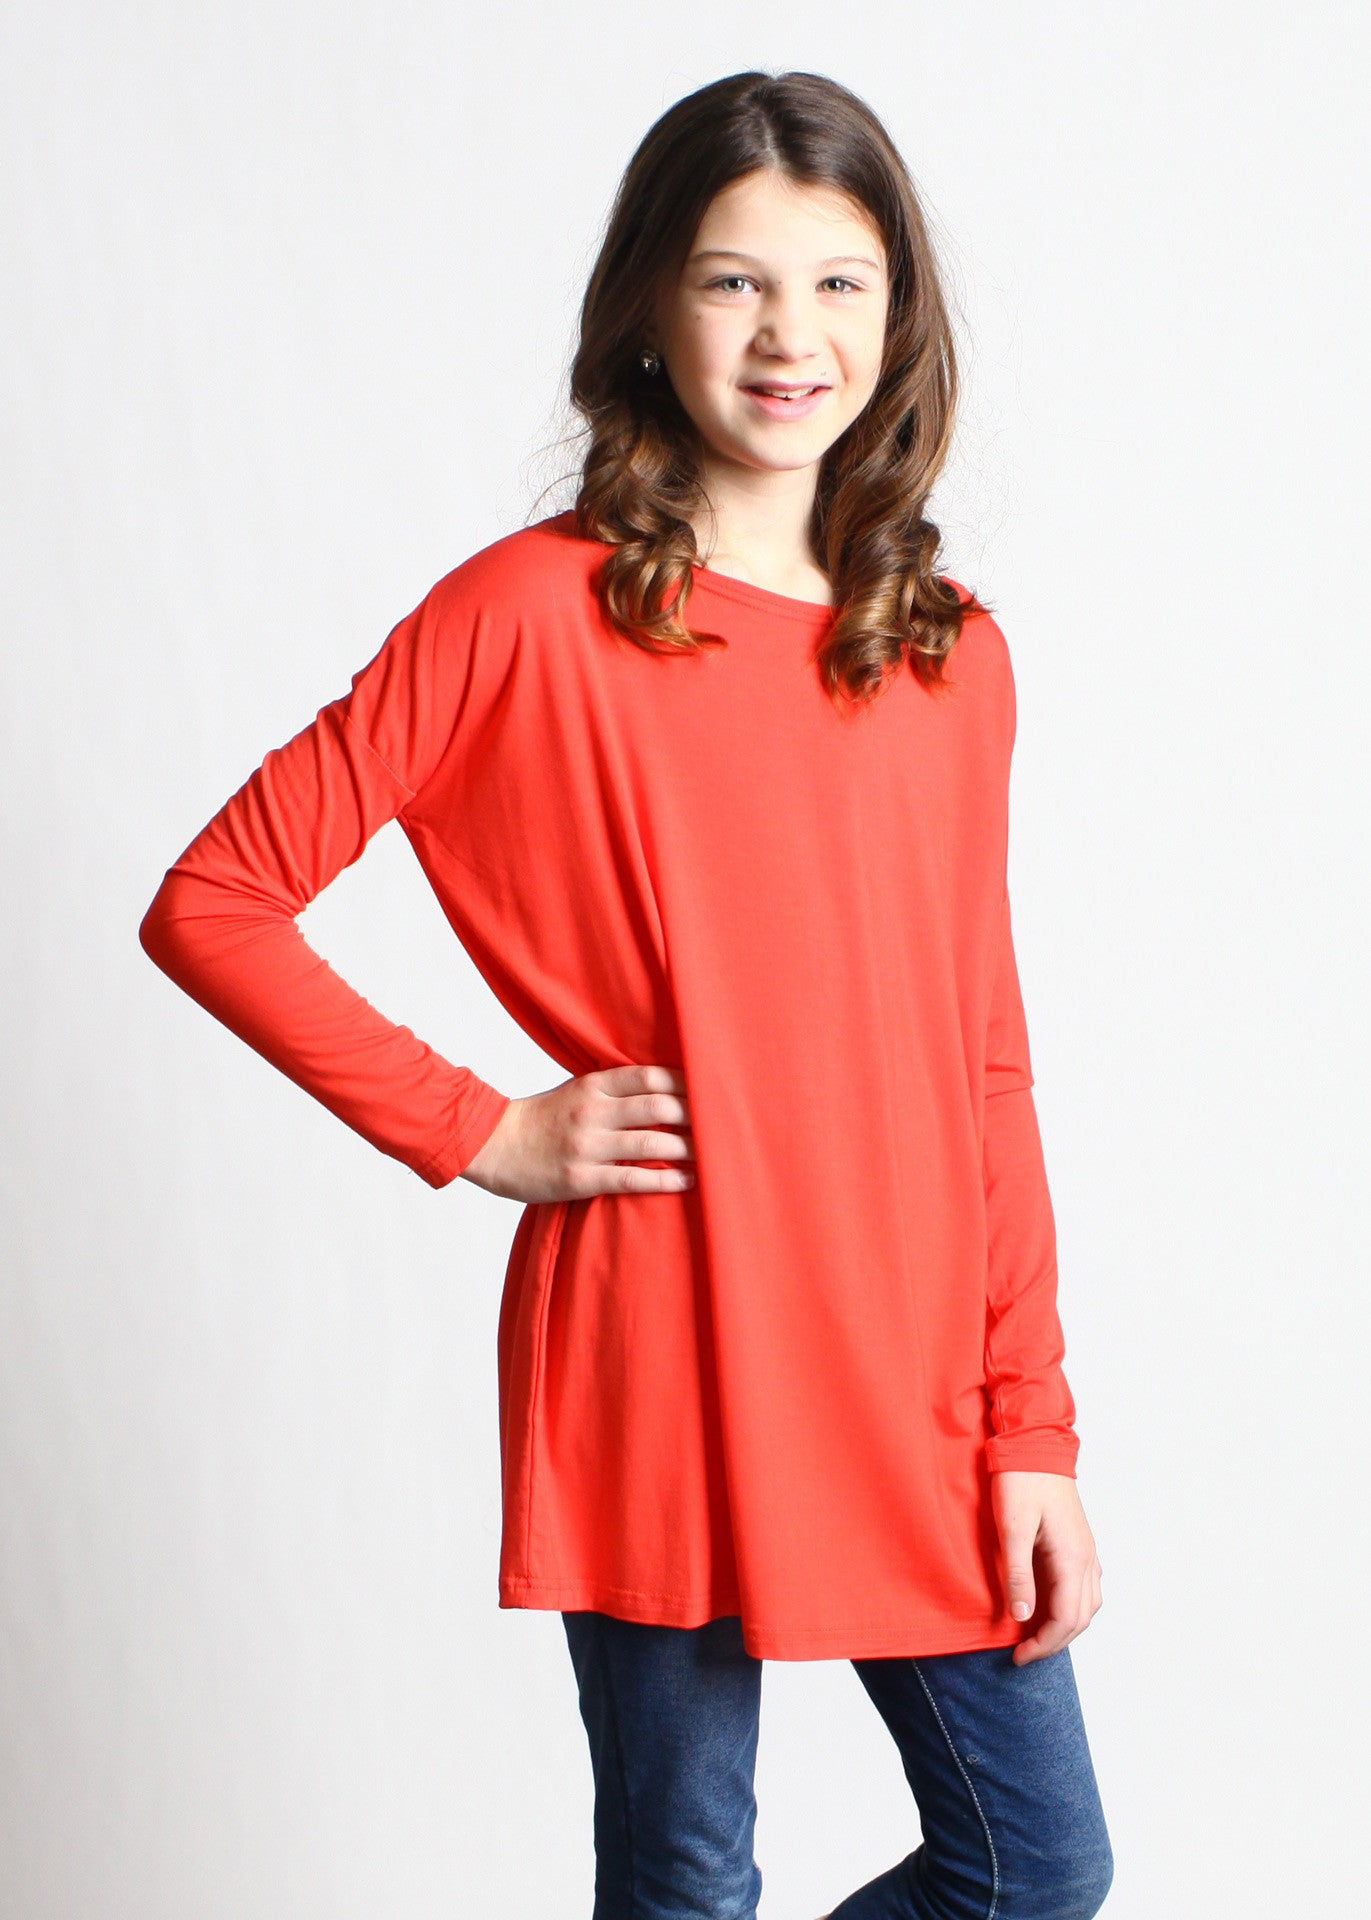 Original Kids Long Sleeve Top - Piko Clearance Center - 8